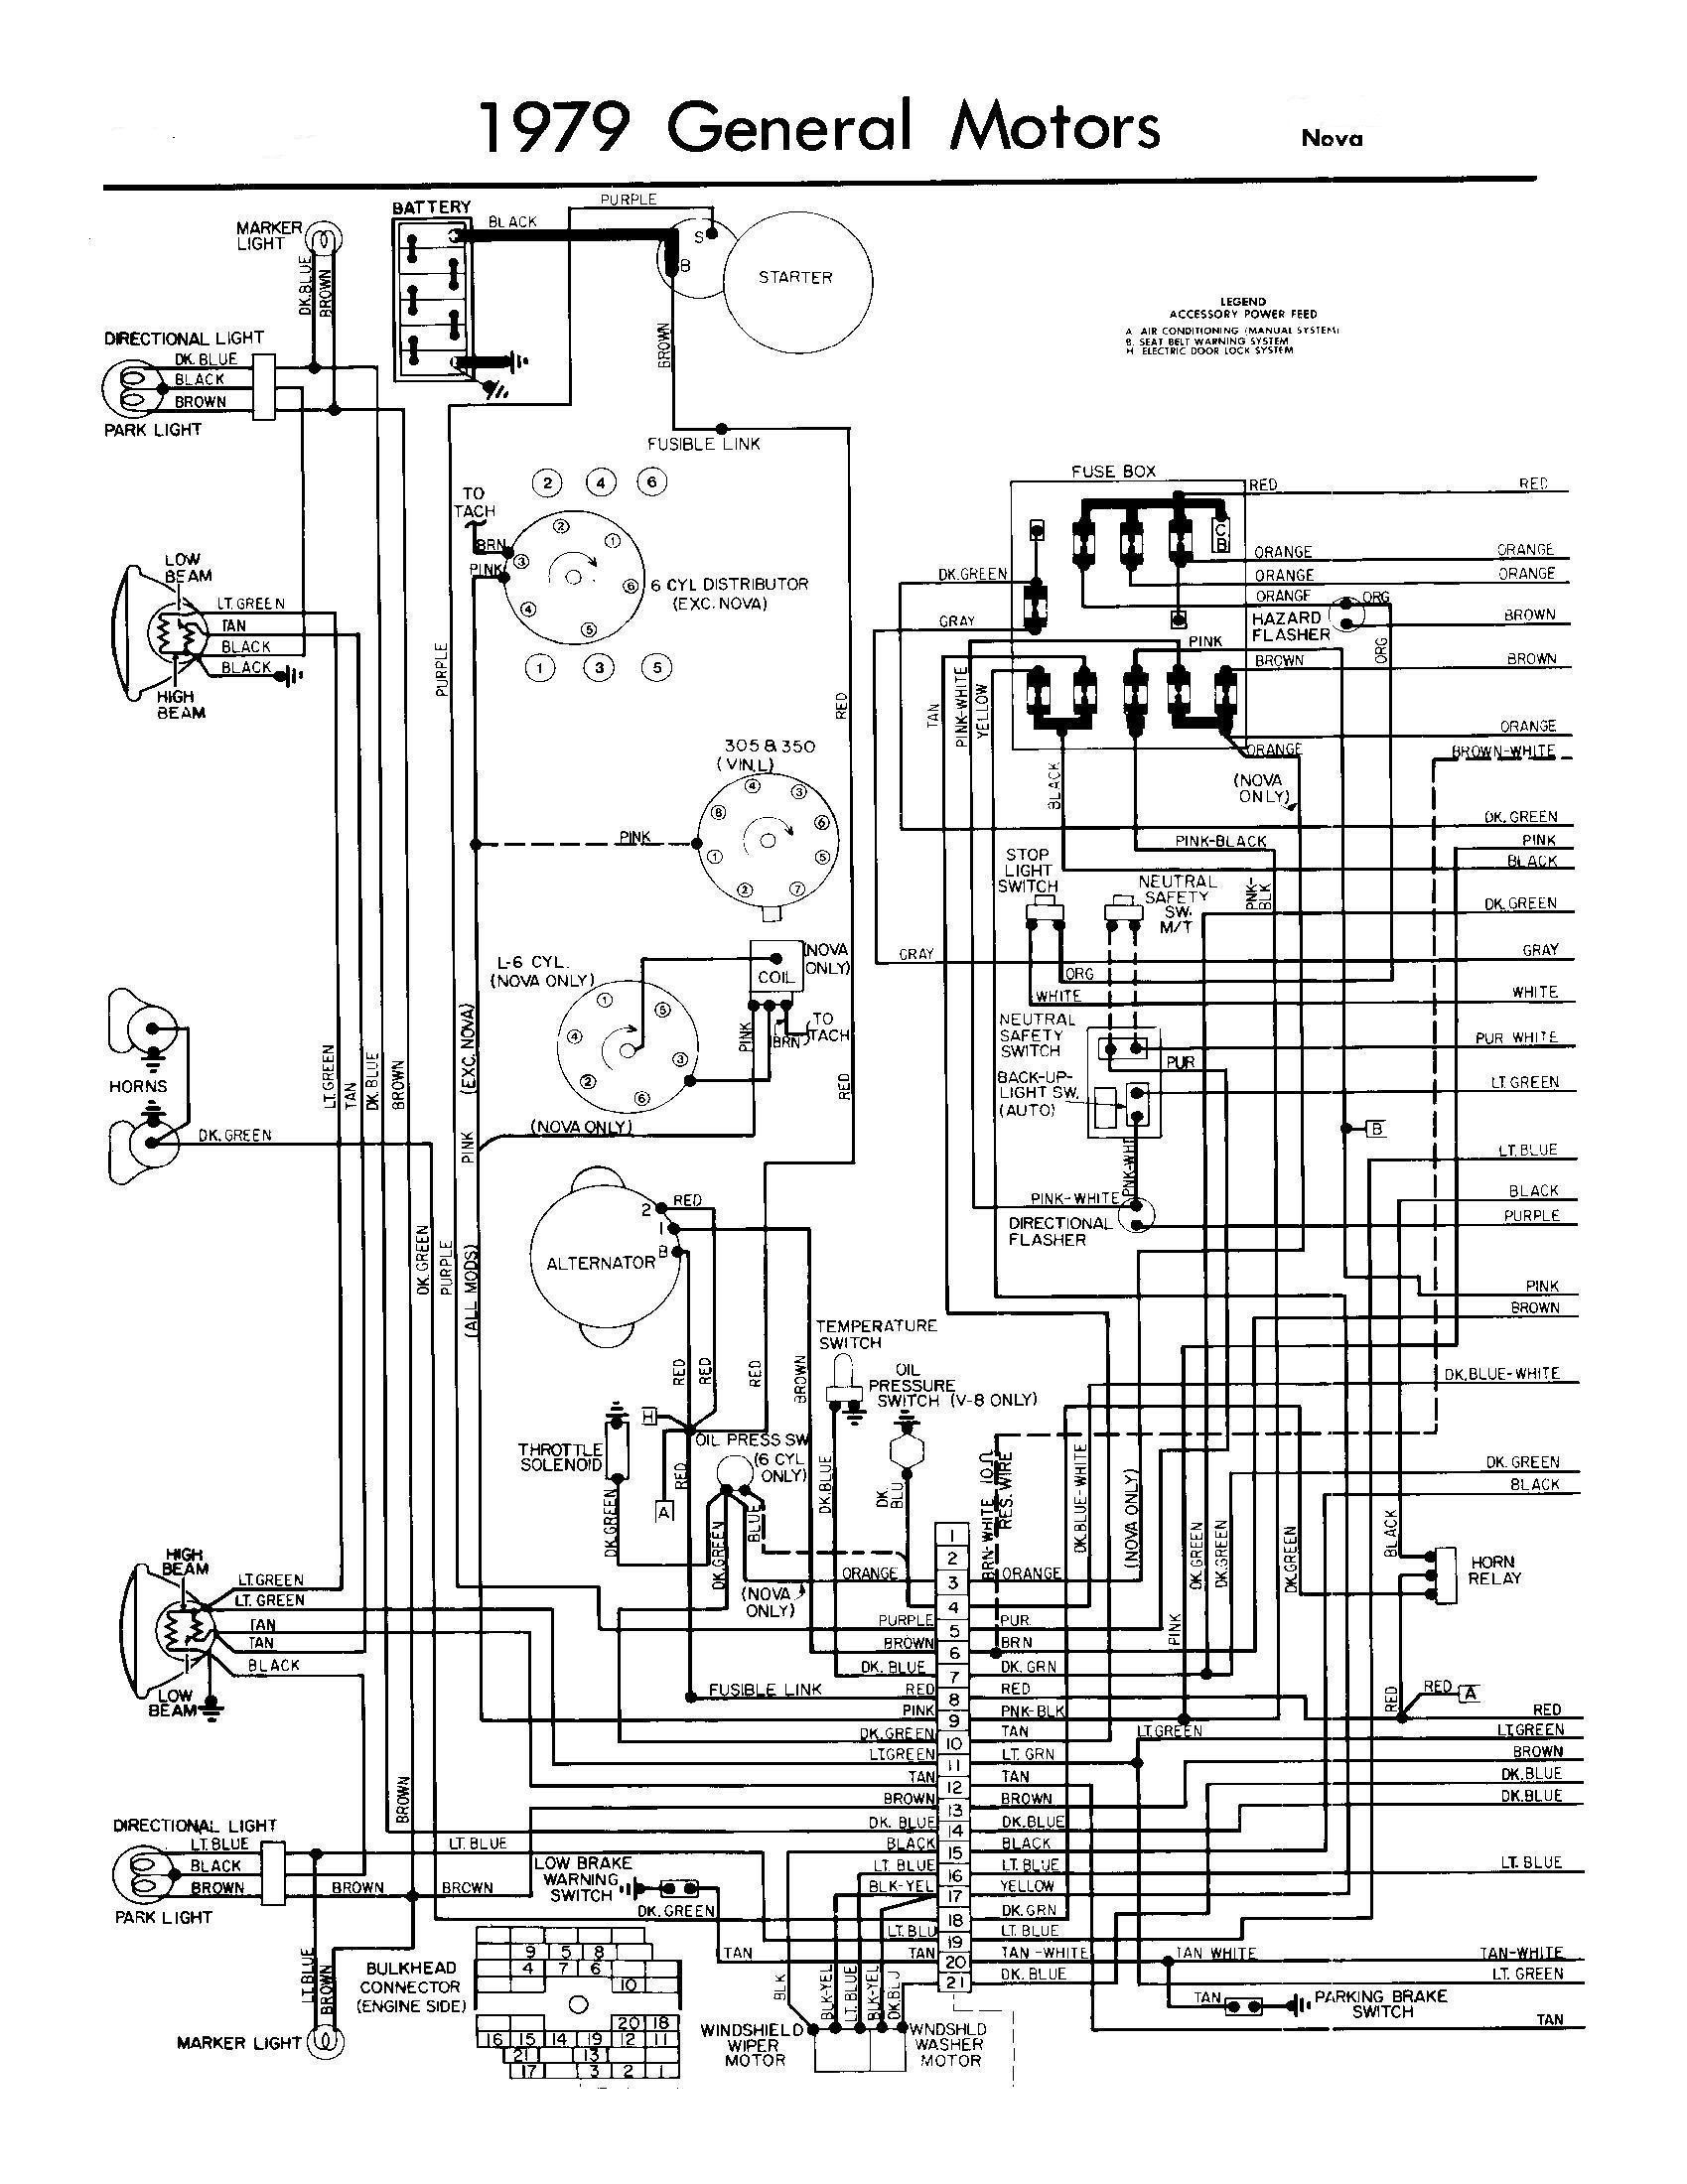 wiring diagrams all years chevette wiring diagram1984 chevette wiring harness 17 11 kenmo lp de \\u20221984 chevy wiring diagram wiring diagram